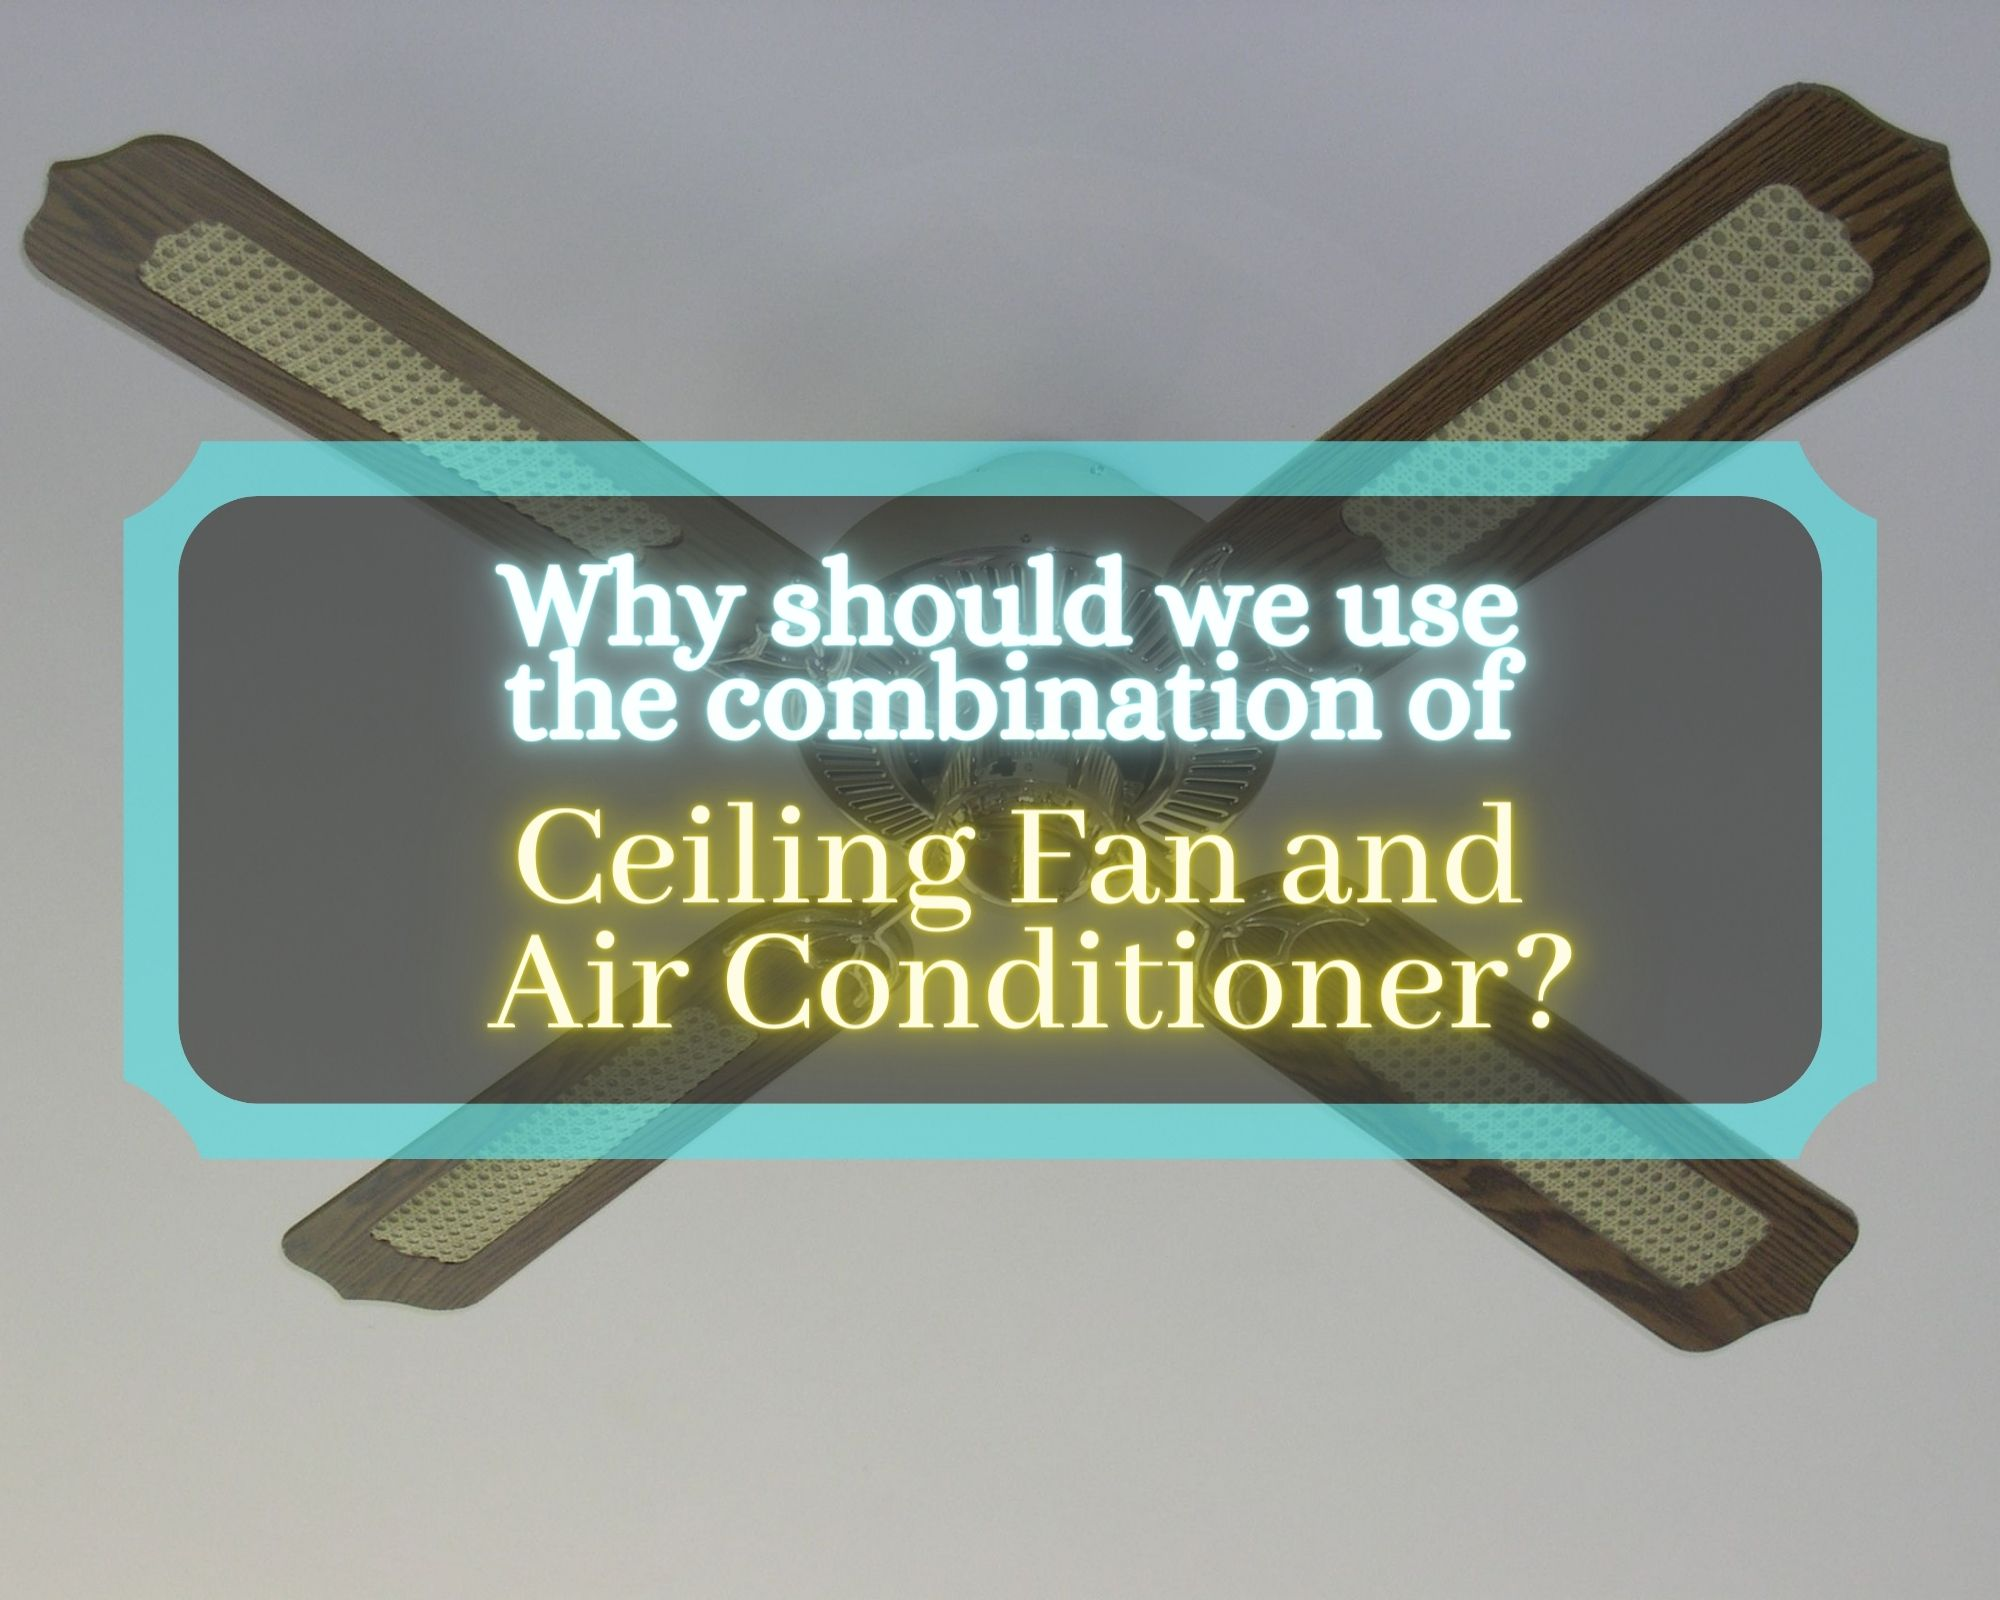 Why should we use the combination of Ceiling Fan and Air Conditioner